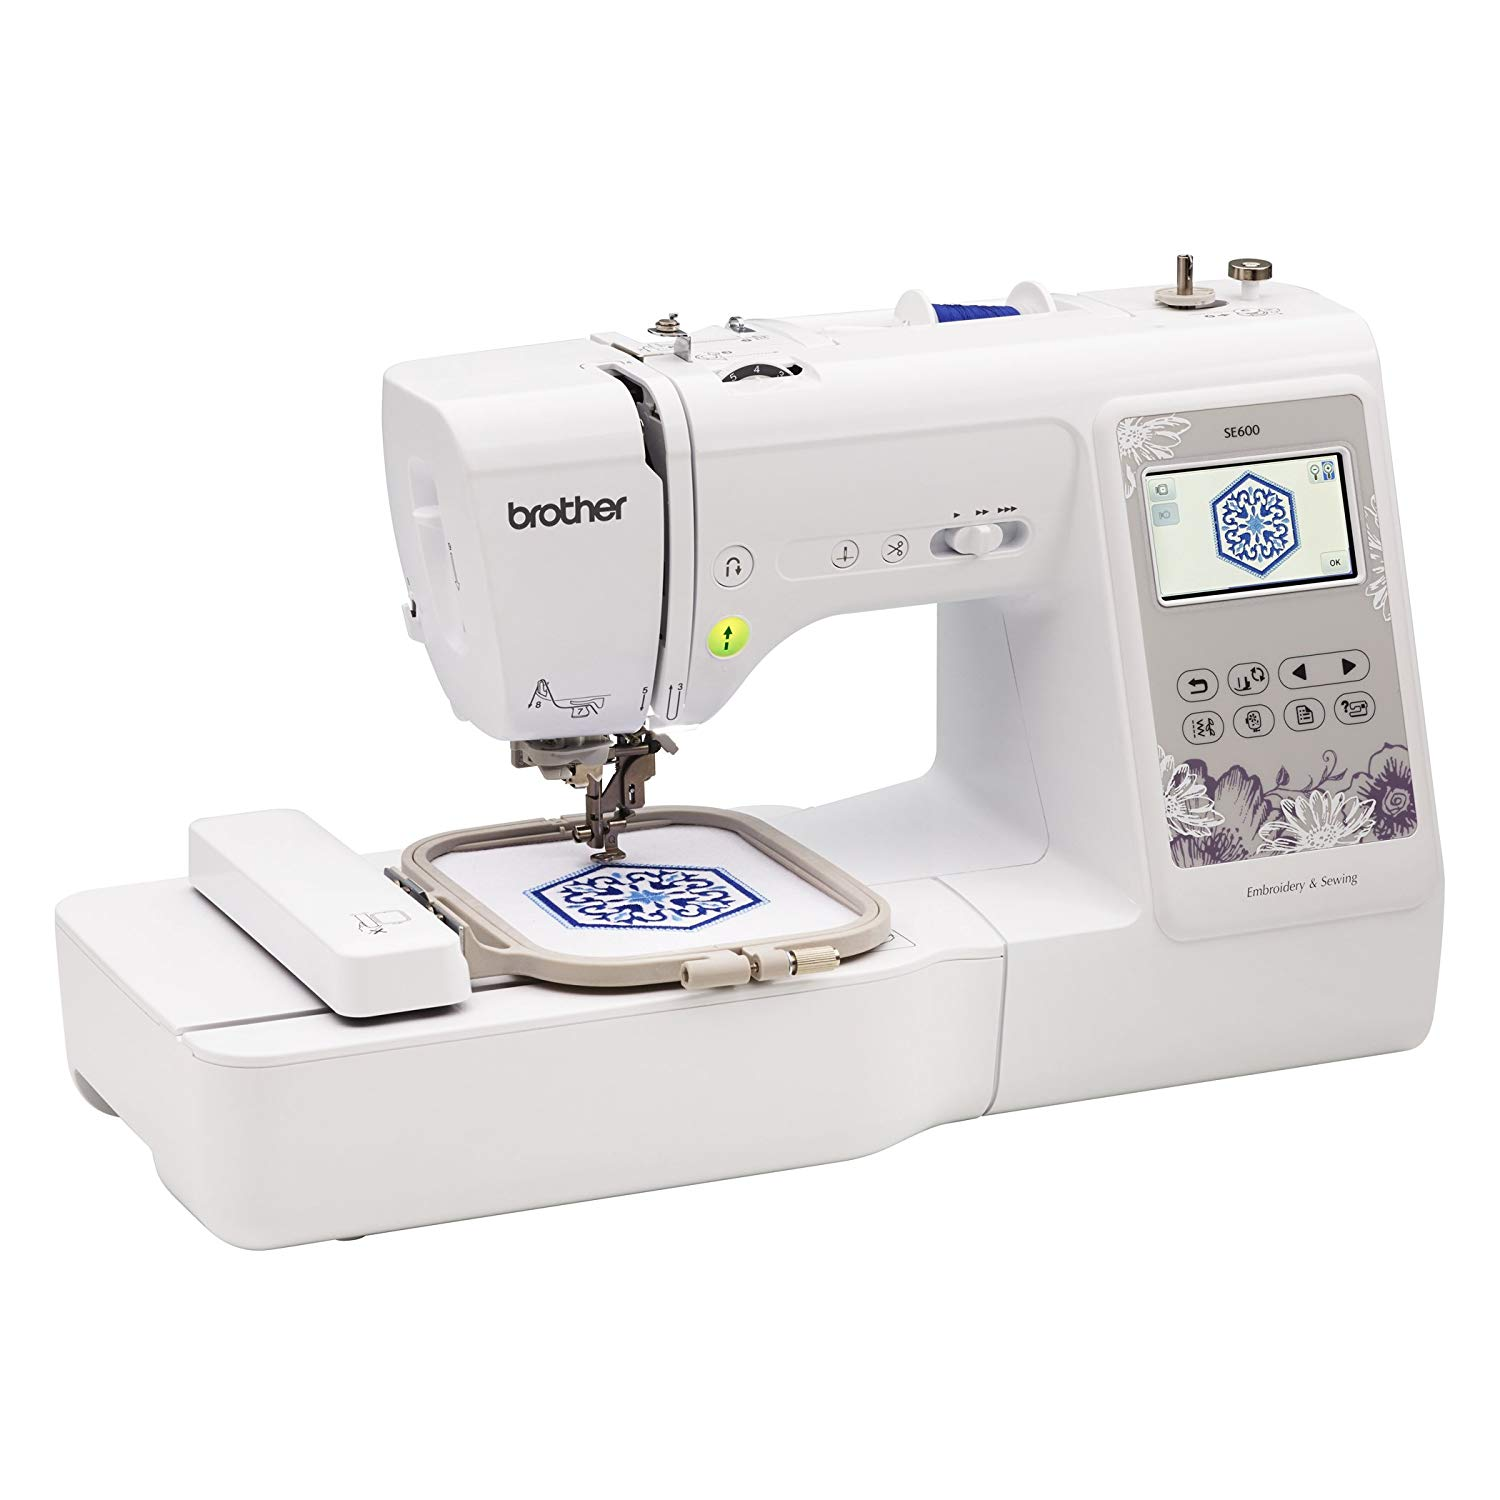 Brother Se600 4 4 Embroidery And Sewing Model Pre Order April Arrival Nova Sewing Centre